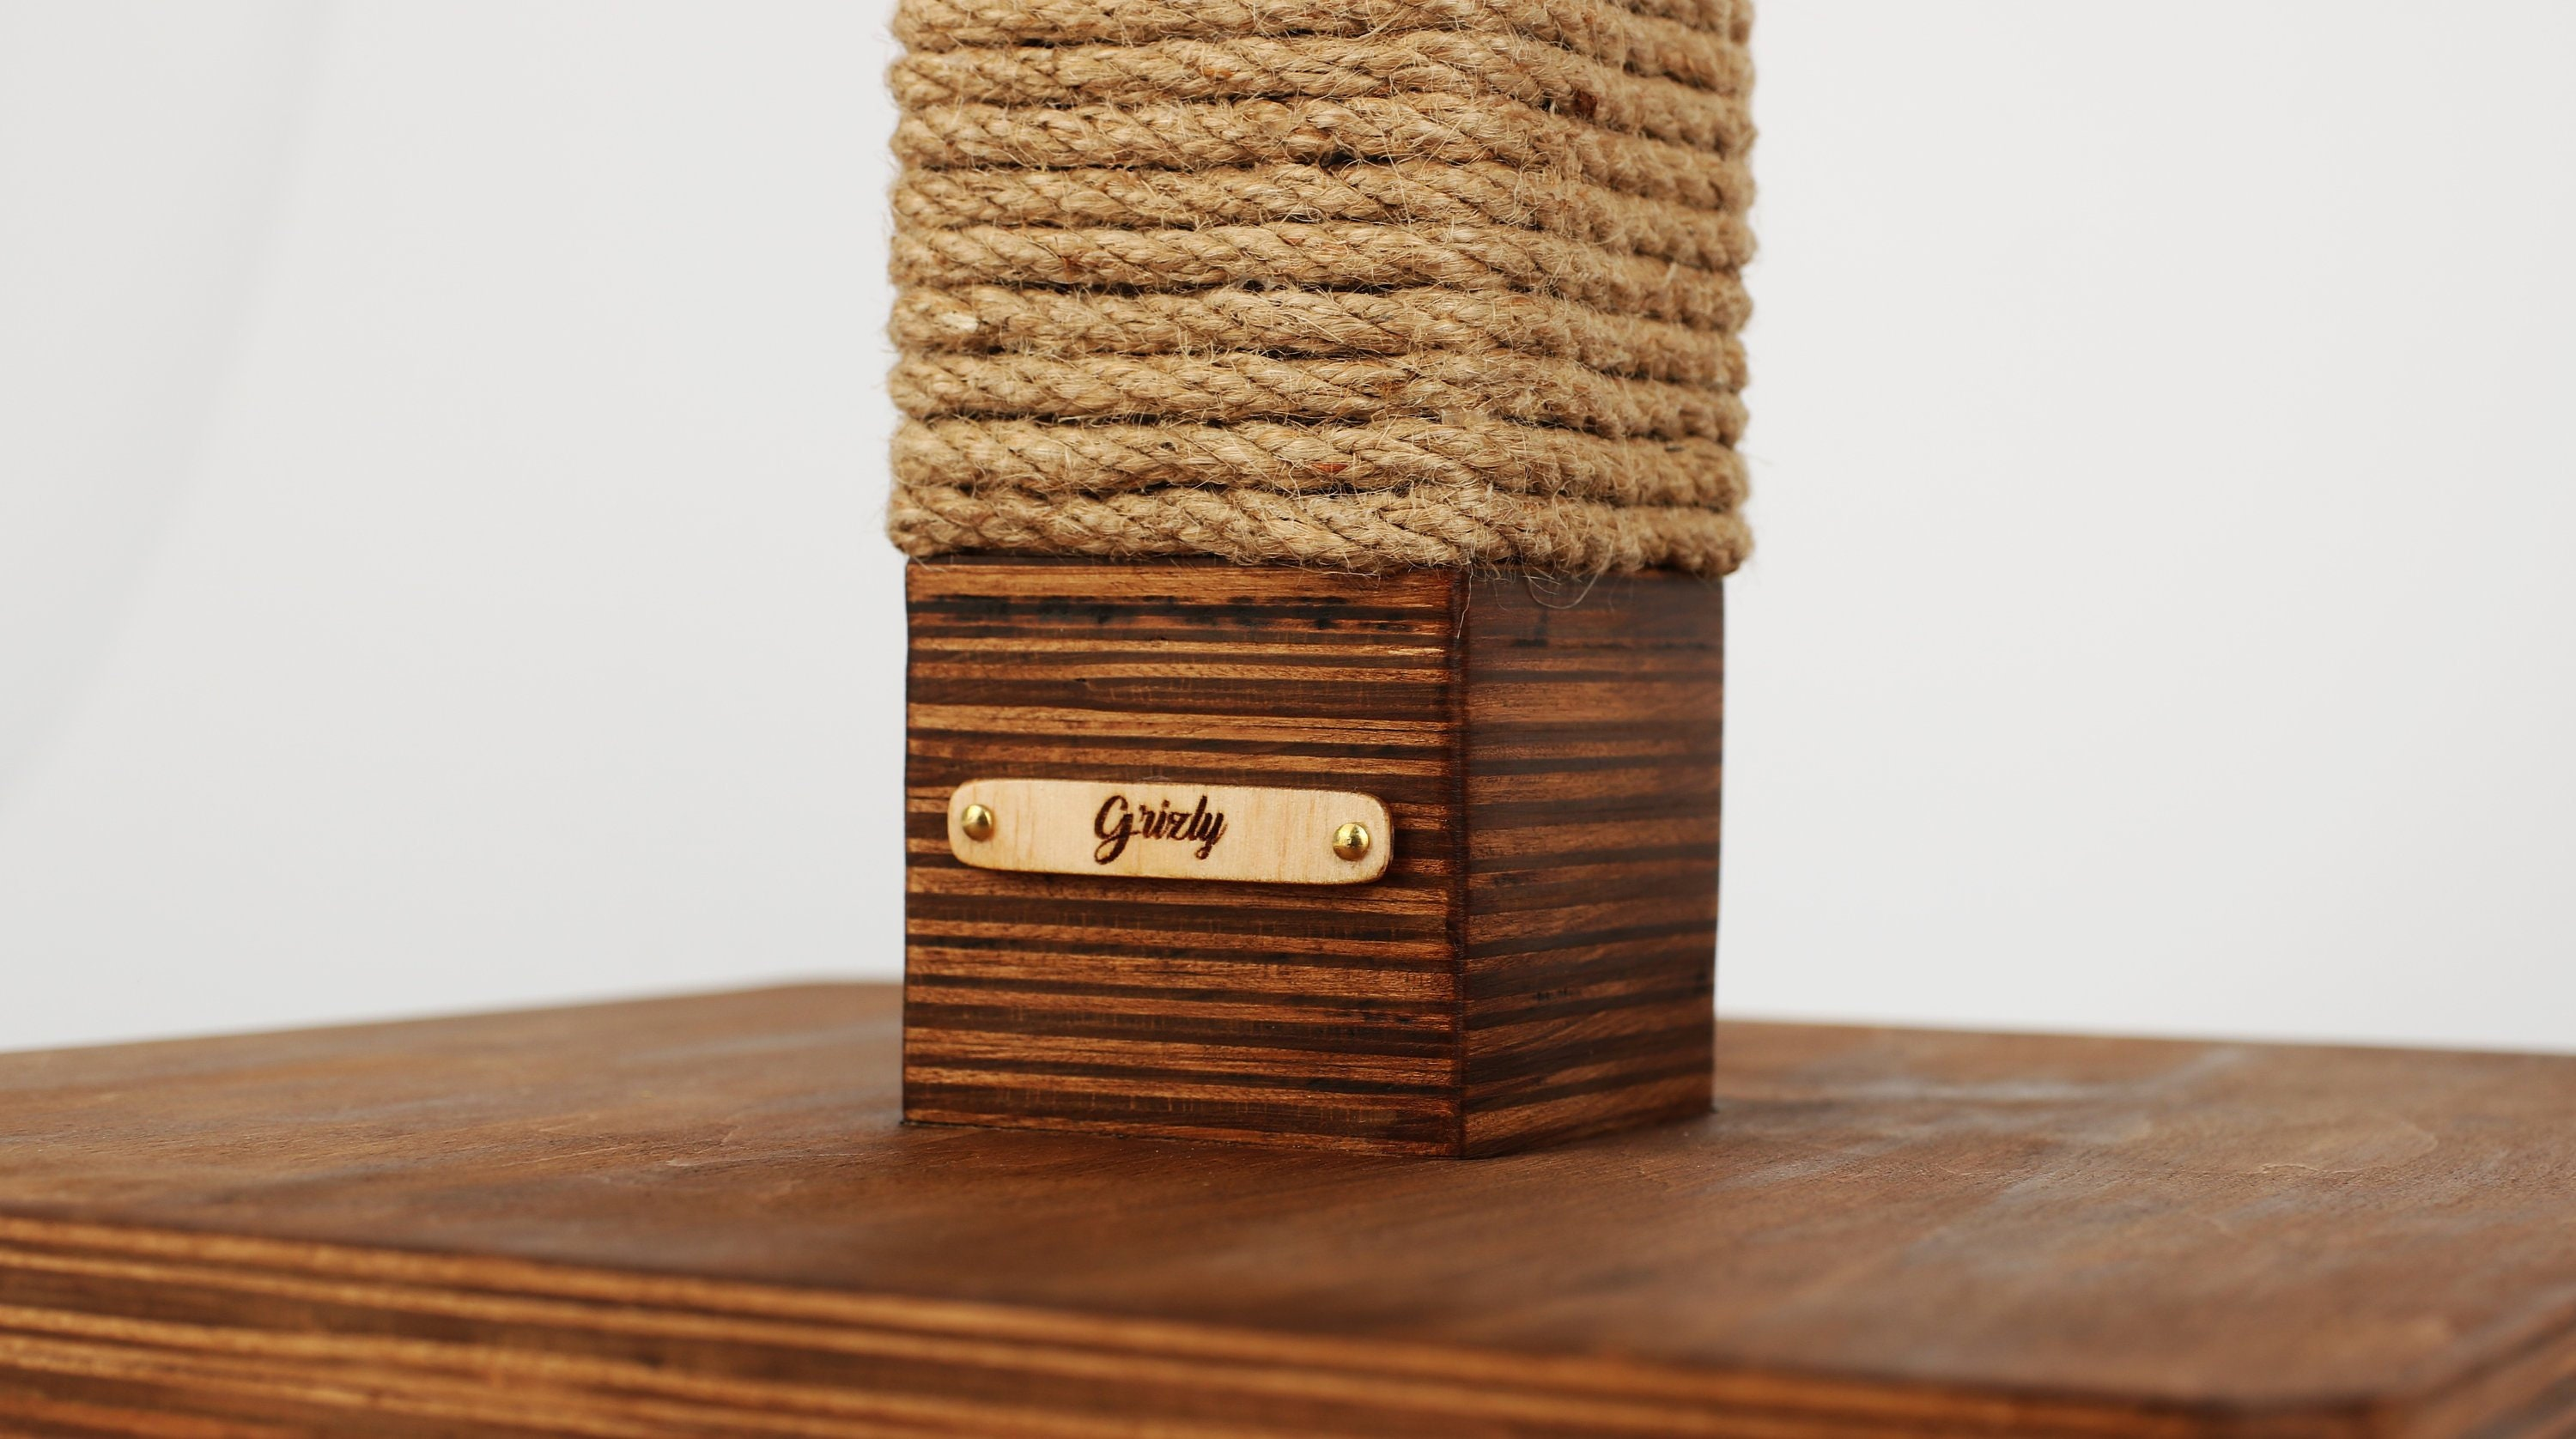 Luxury Personalized Cat Scratcher Personalized Wooden Cat Scratching Post Cat Toy Personalized Different Colors Of Wood 20 Metrs Of Rope